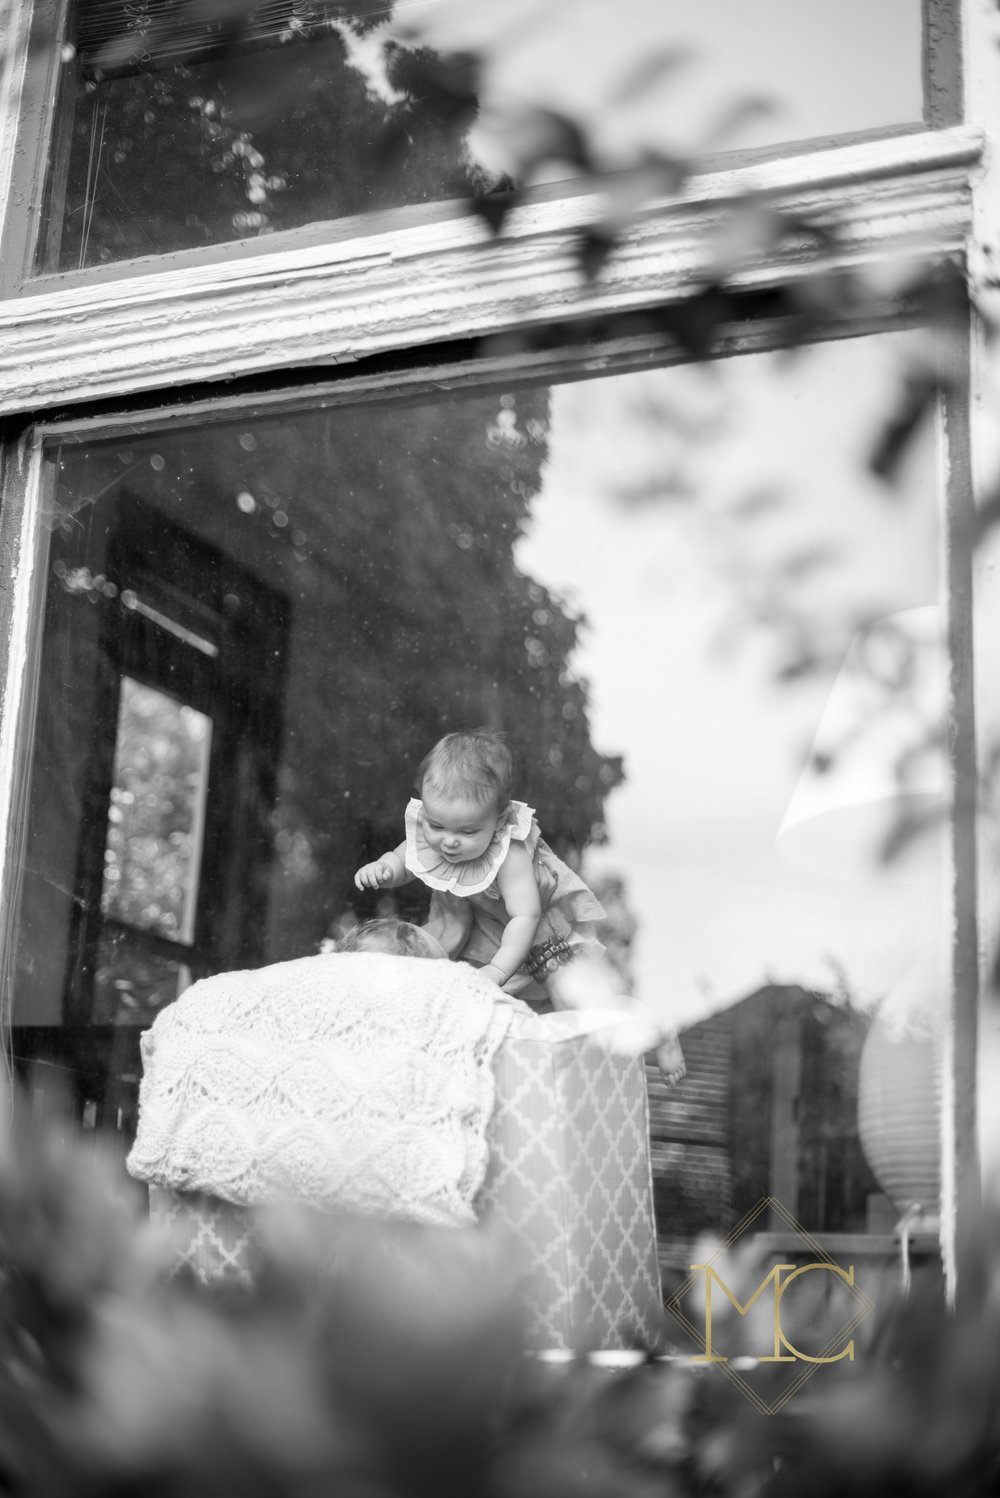 image from nashville lifestyle photo session of a mom and daughter through window